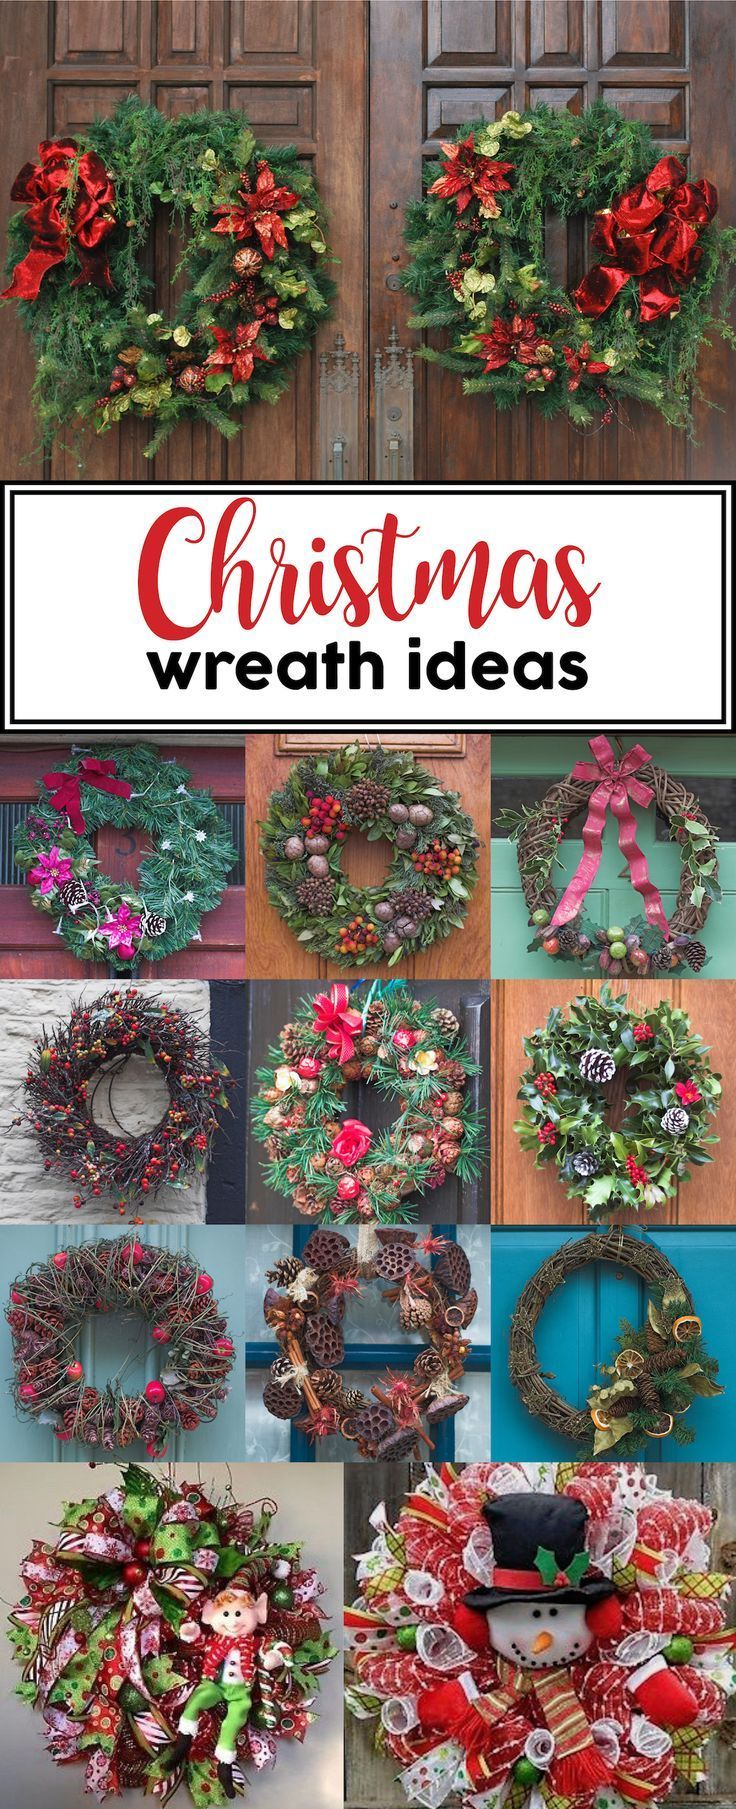 TONS of Christmas wreath ideas!